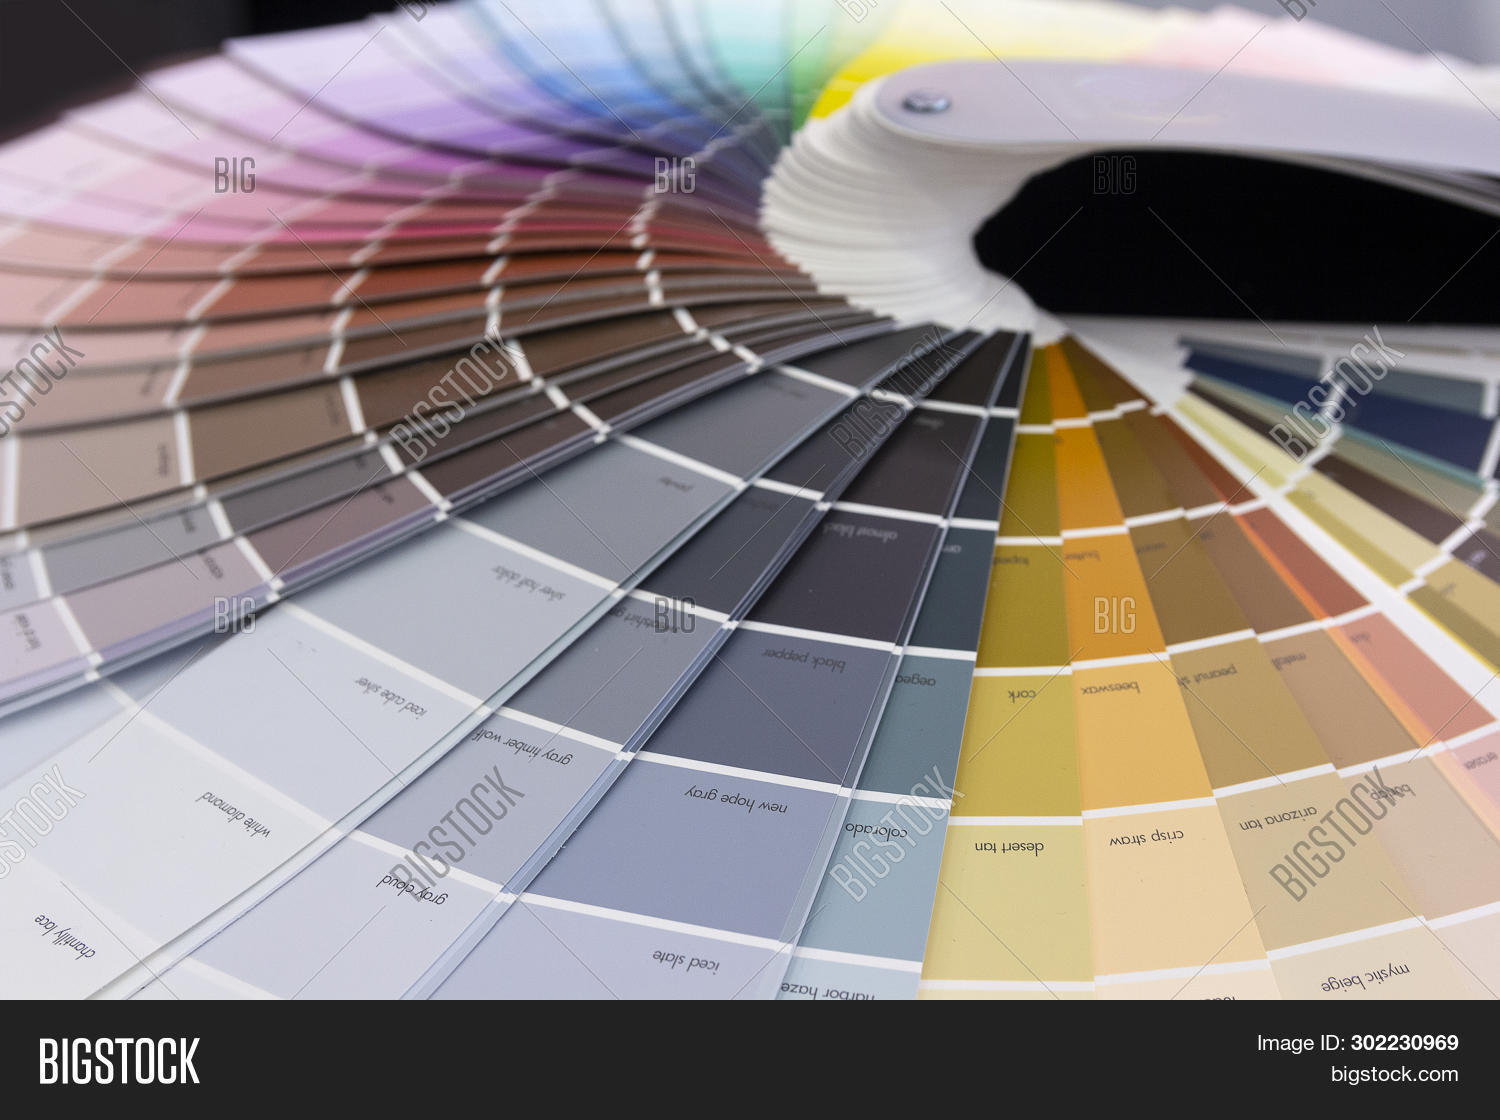 accuracy,background,card,catalog,chart,checking,choice,choosing,circle,closeup,coated,collection,color,colorful,coloring,colour,colourful,decide,decoration,design,different,example,gamma,graphic,guidance,guide,matching,multicolor,multicolored,paint,palette,pattern,picking,pointer,prepress,press,print,printer,printout,profile,rainbow,renovation,round,sample,sampler,selection,semicircle,spectrum,swatch,variation